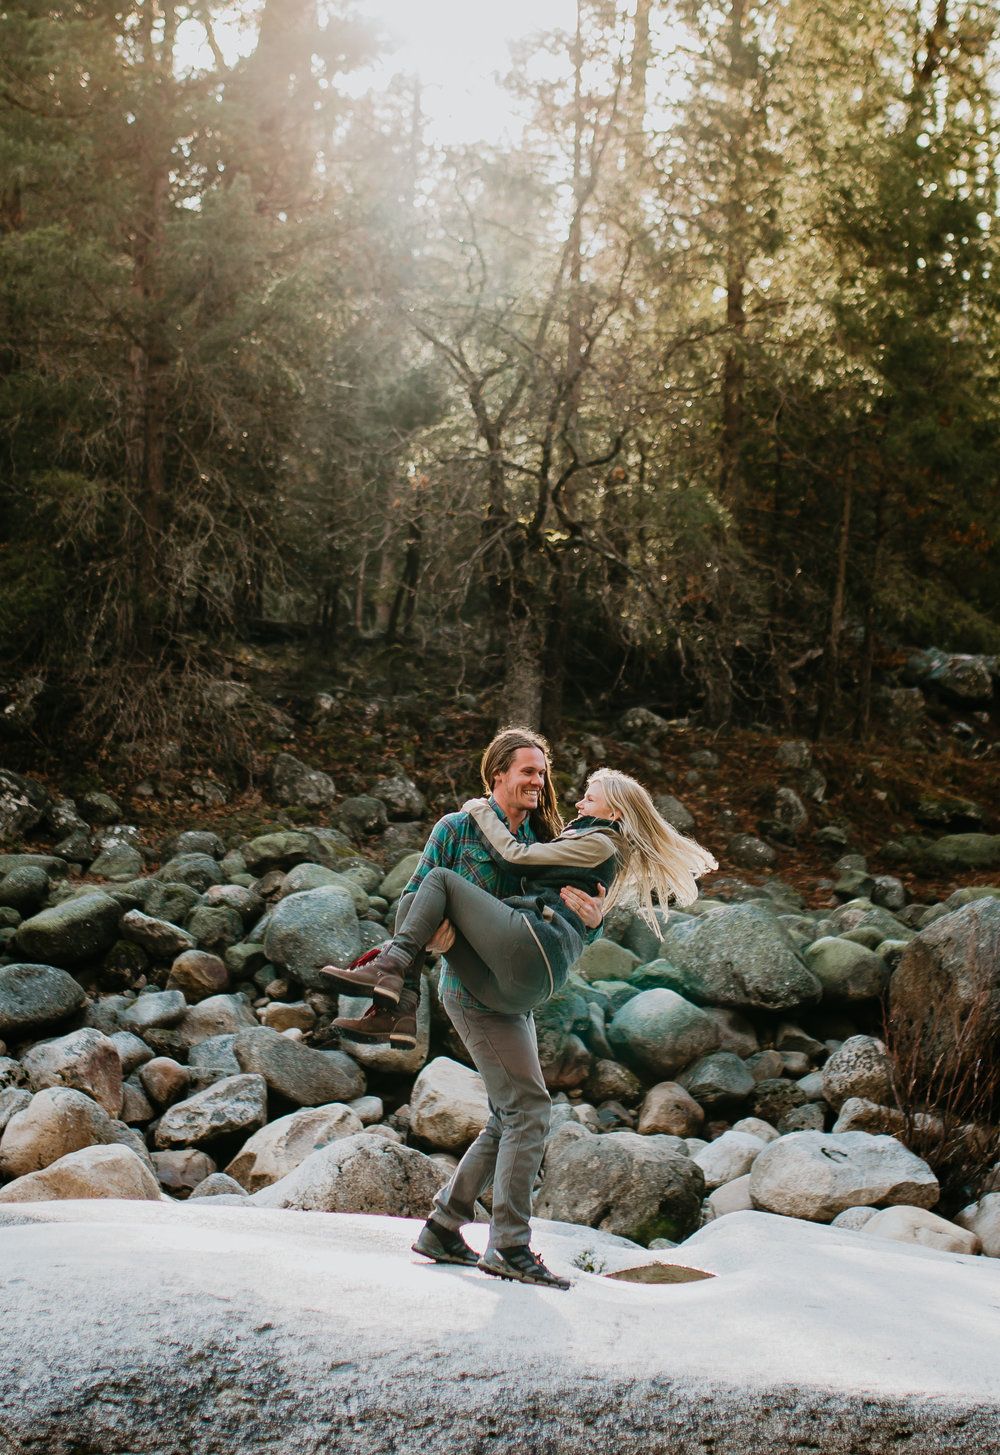 nicole-daacke-photography-yosemite-riverside-adventurous-engagement-photos-in-yosemite-national-park-elopement-photographer-weddings-travel-destination-wedding-eloping-elope-pine-forest-19.jpg